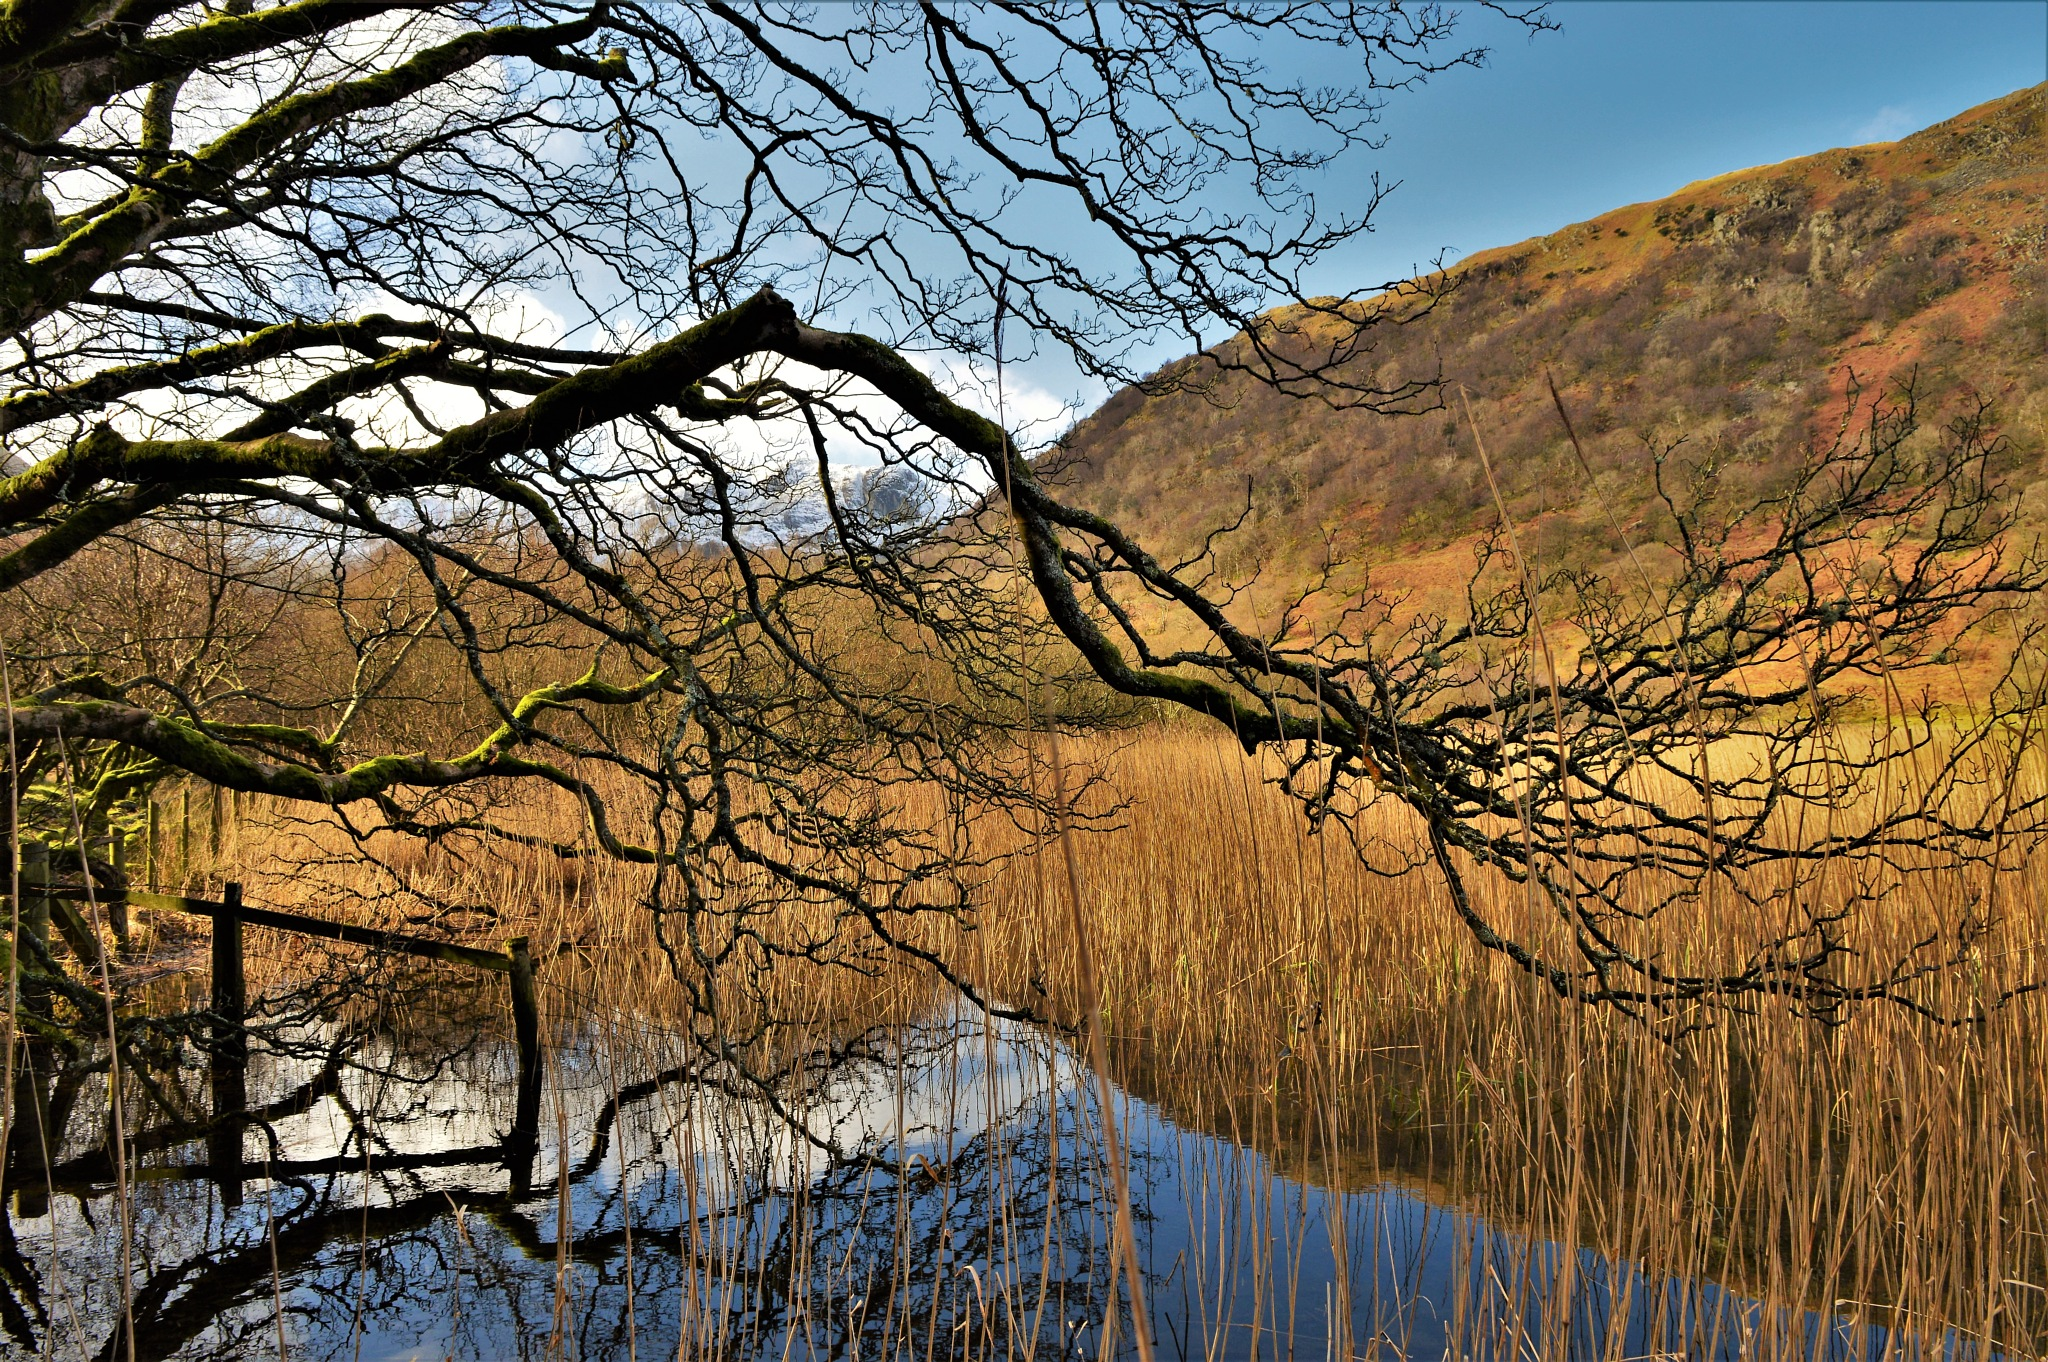 Reflections on Brotherswater by Steve Wilkinson